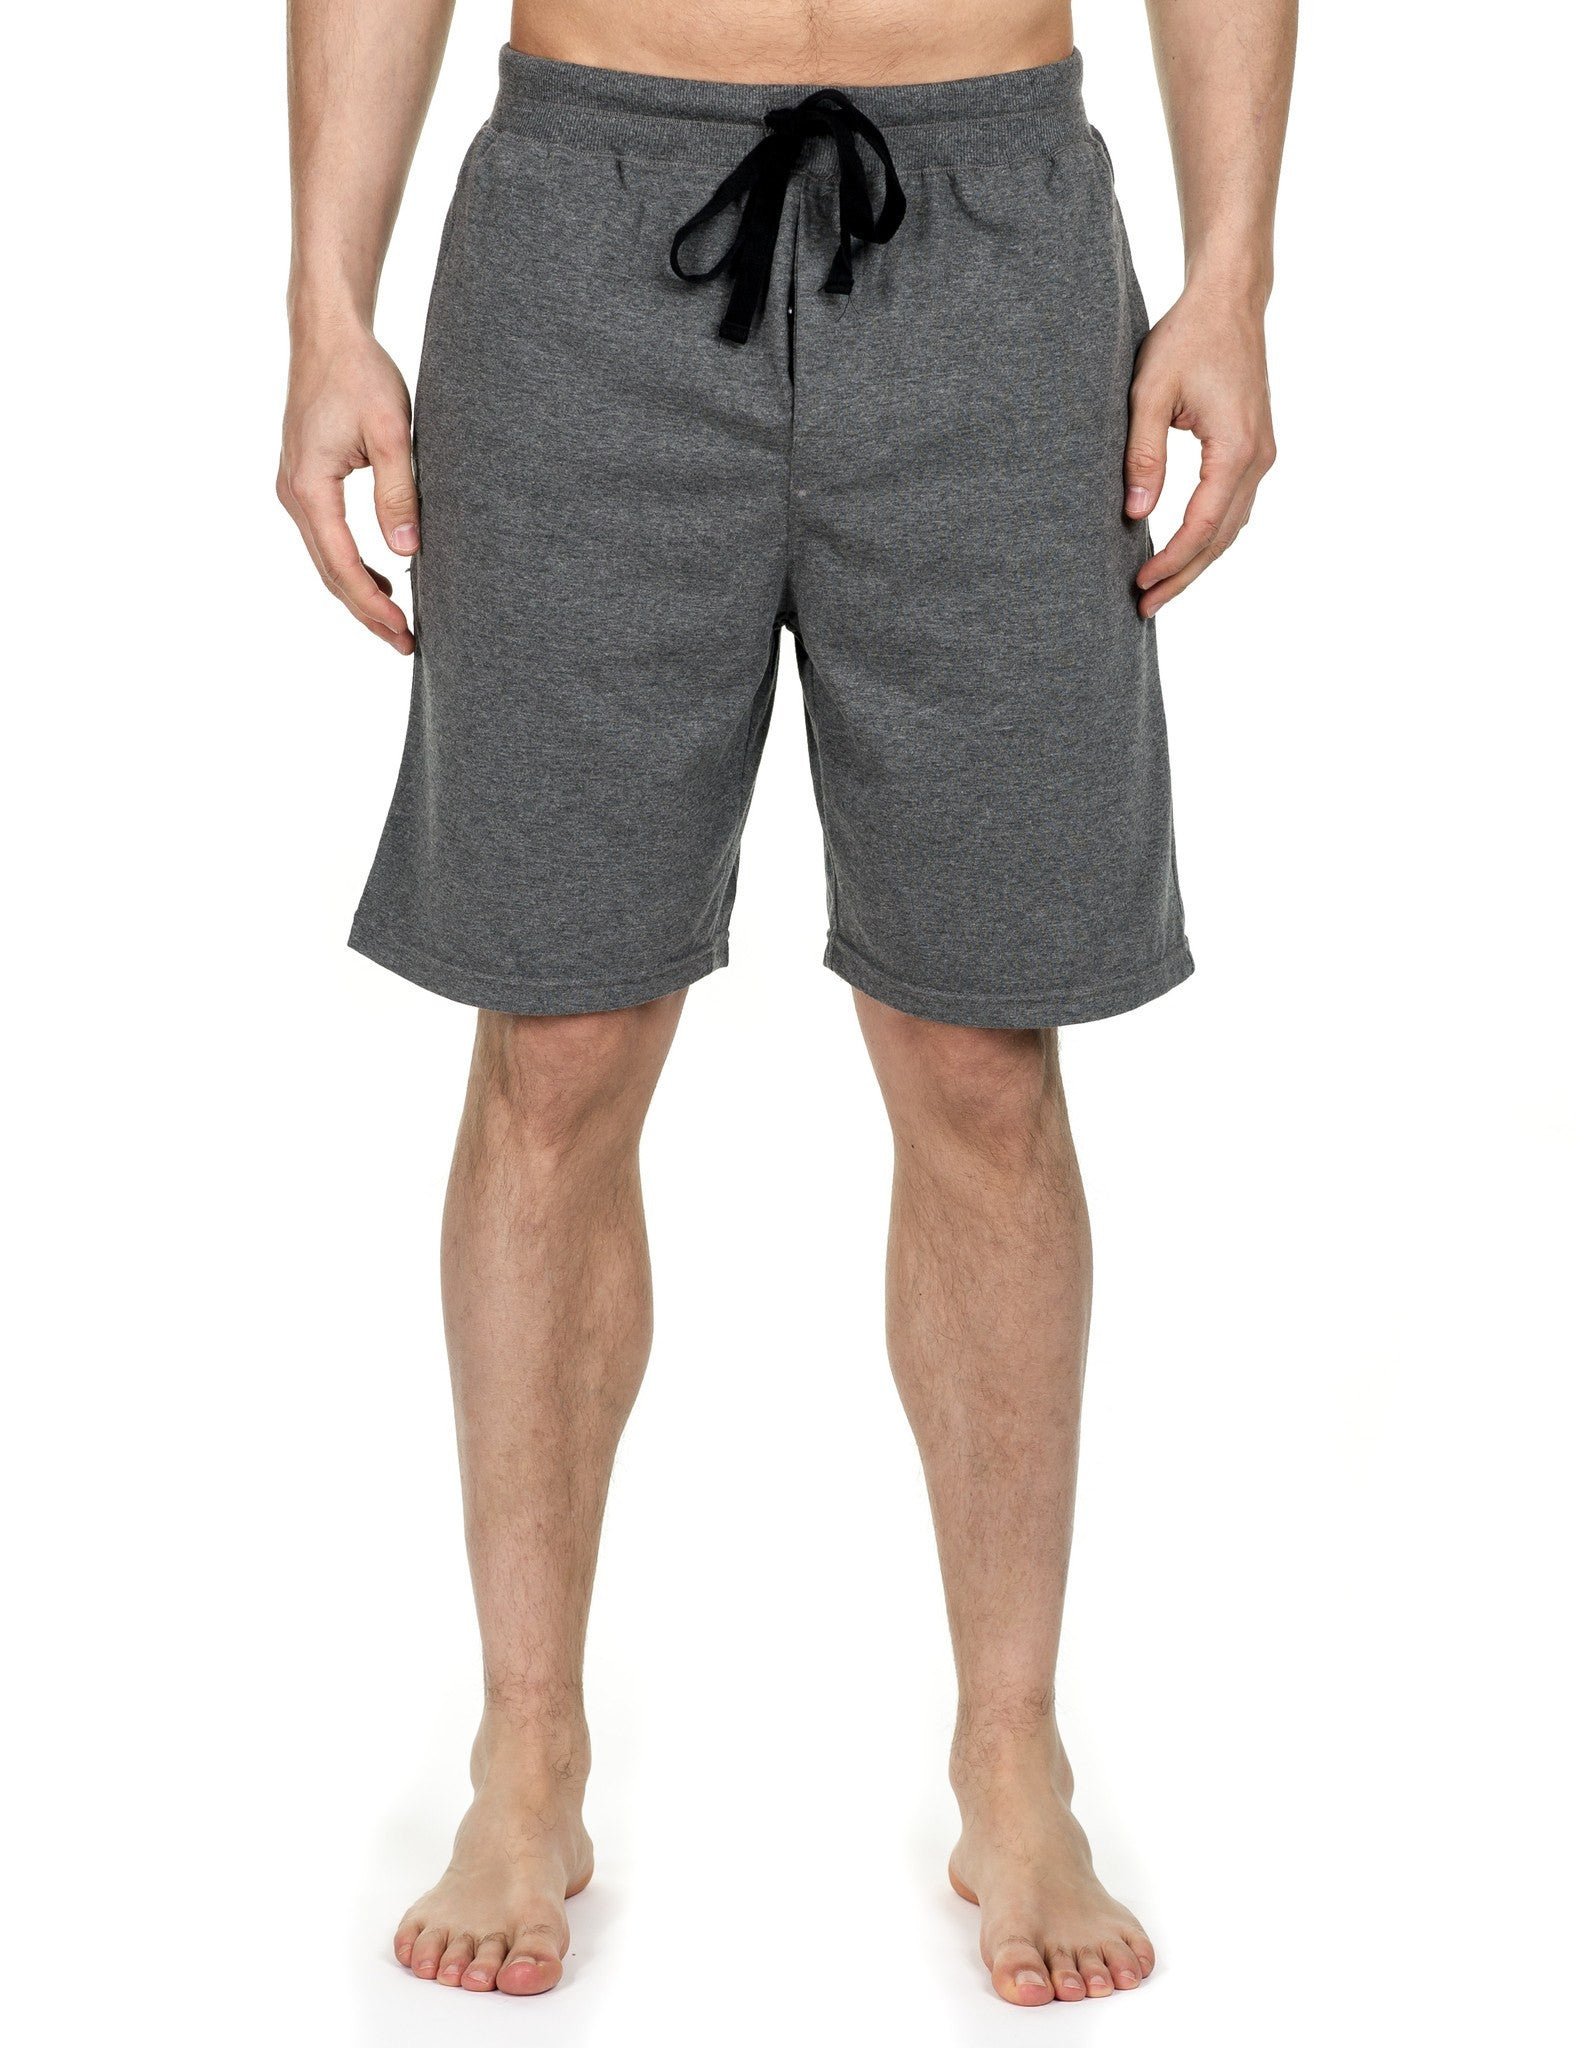 Men's Premium Knit Lounge/Sleep Shorts